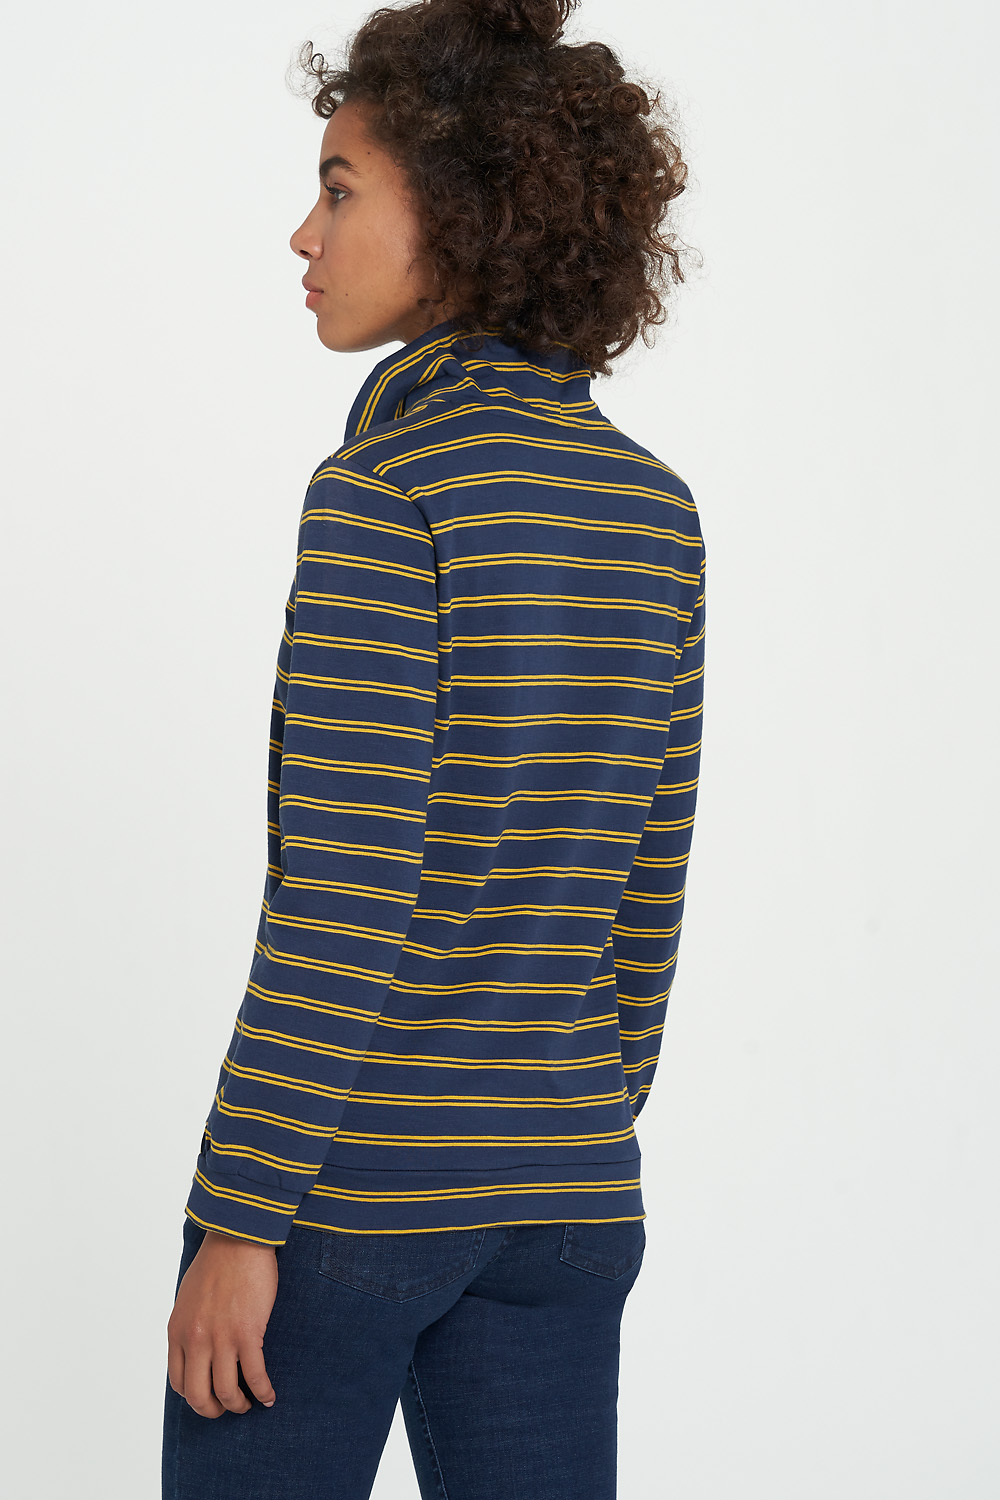 Sweater JARLA navy stripes